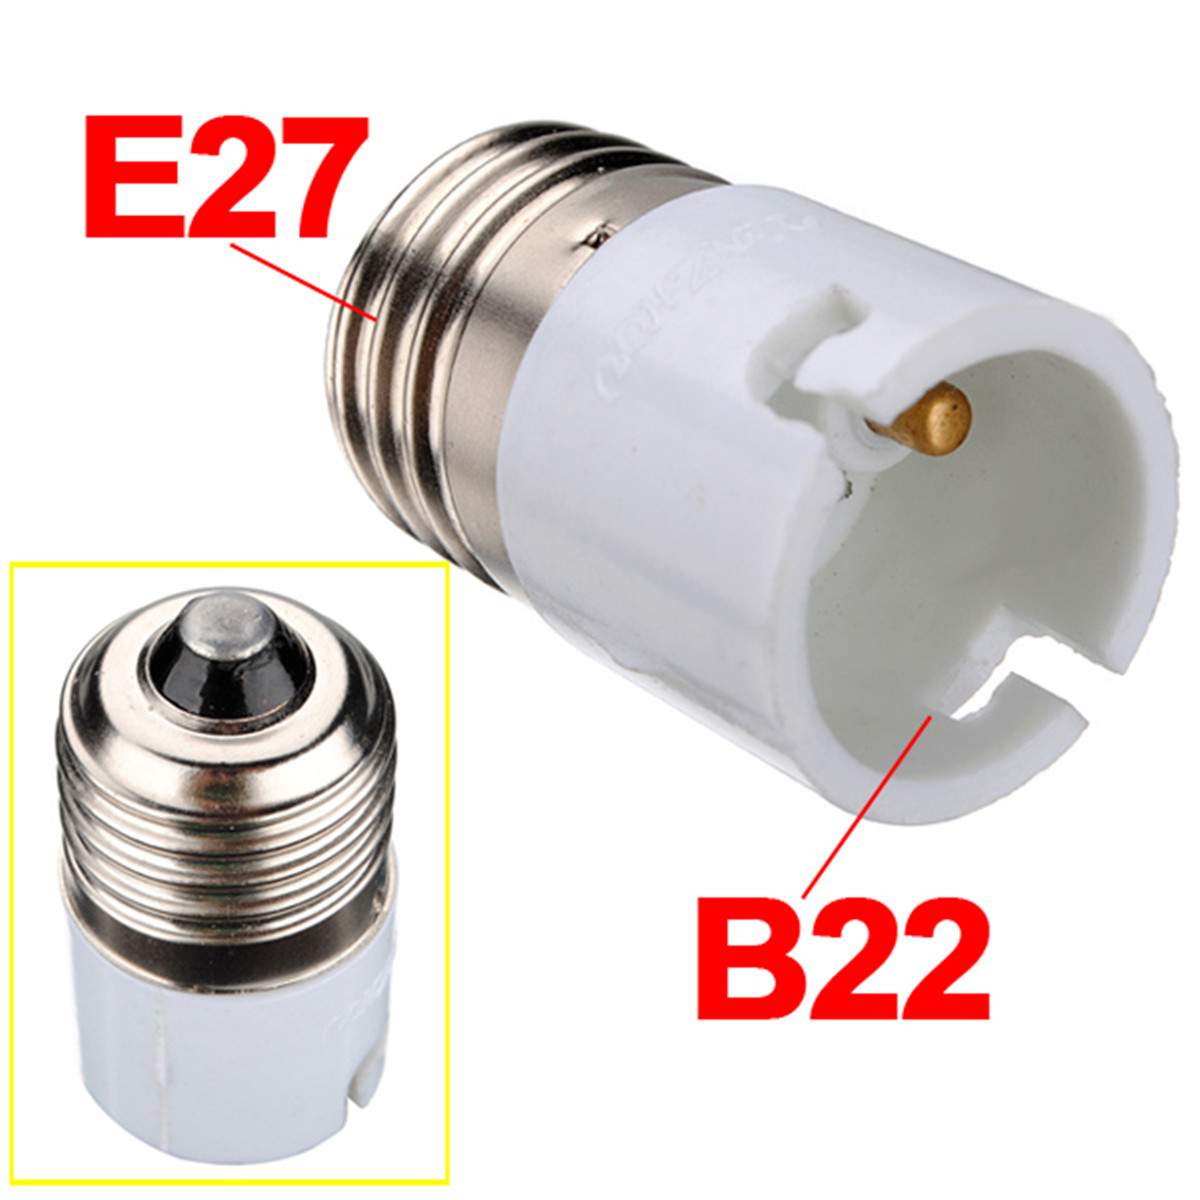 E14 E27 Adapter 2x E27 B22 E14 E12 E17 Base Socket Light Bulb Lamp Holder